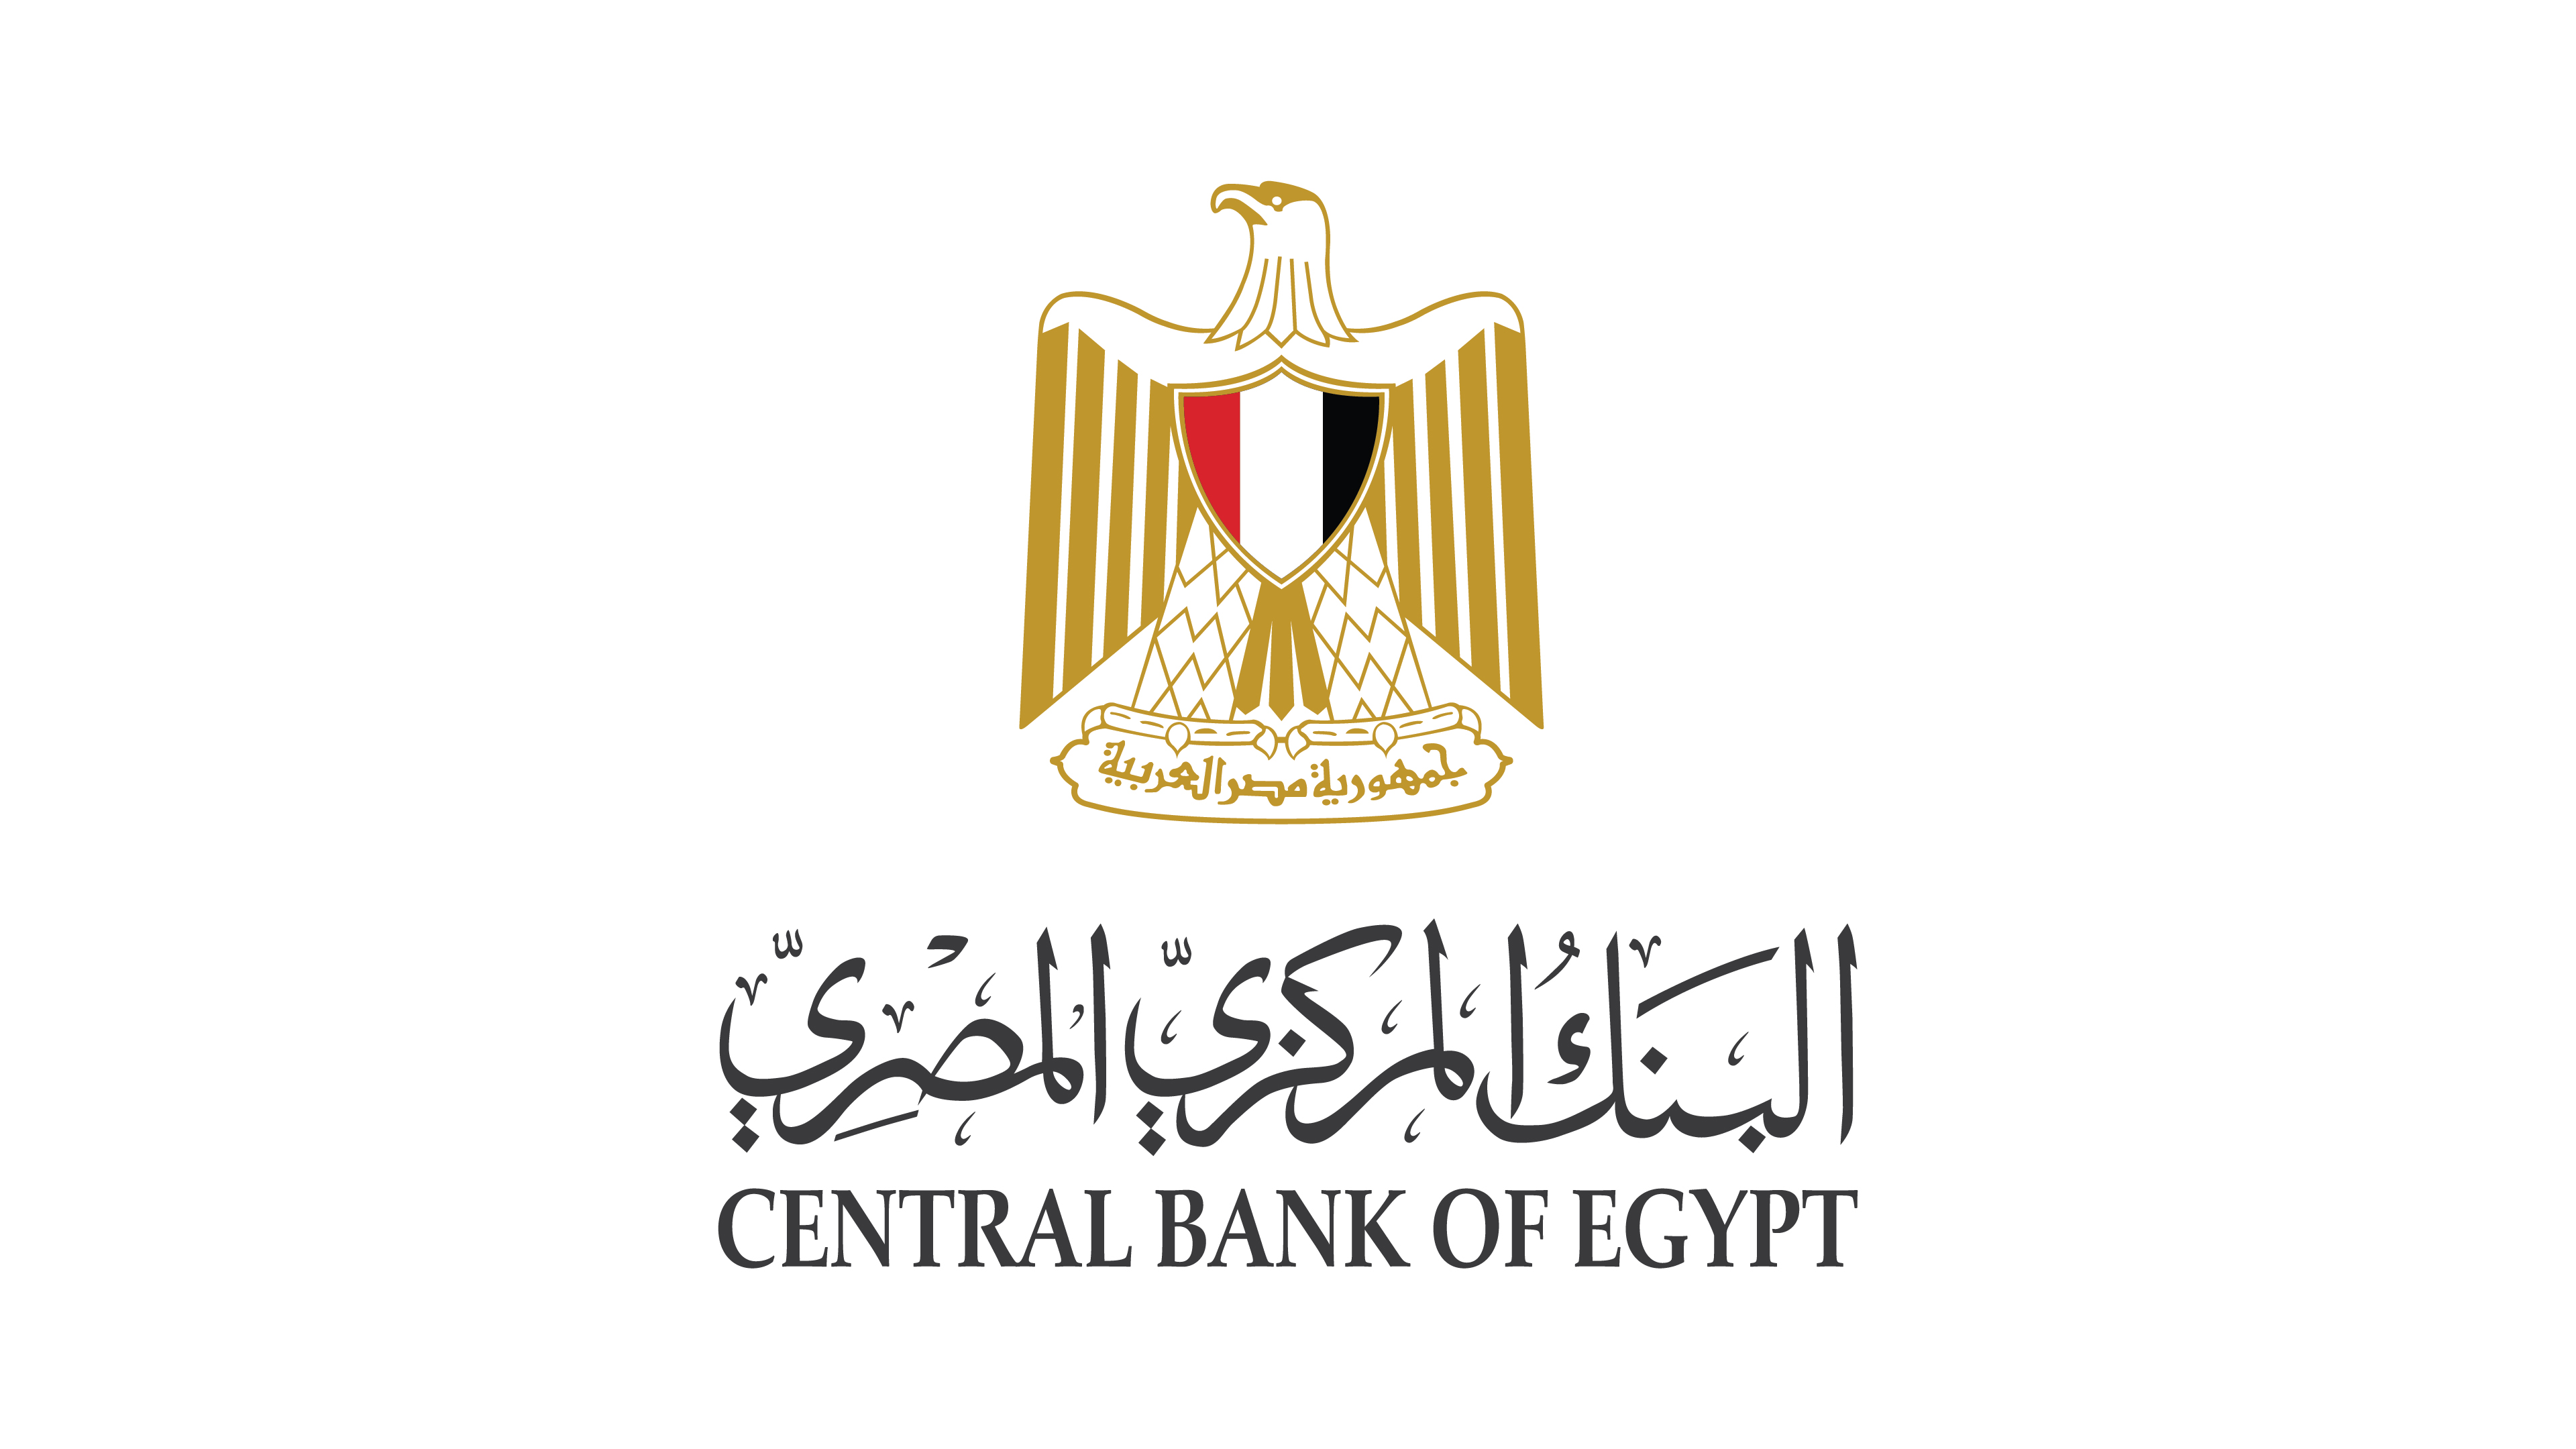 Central Bank of Egypt lgoo